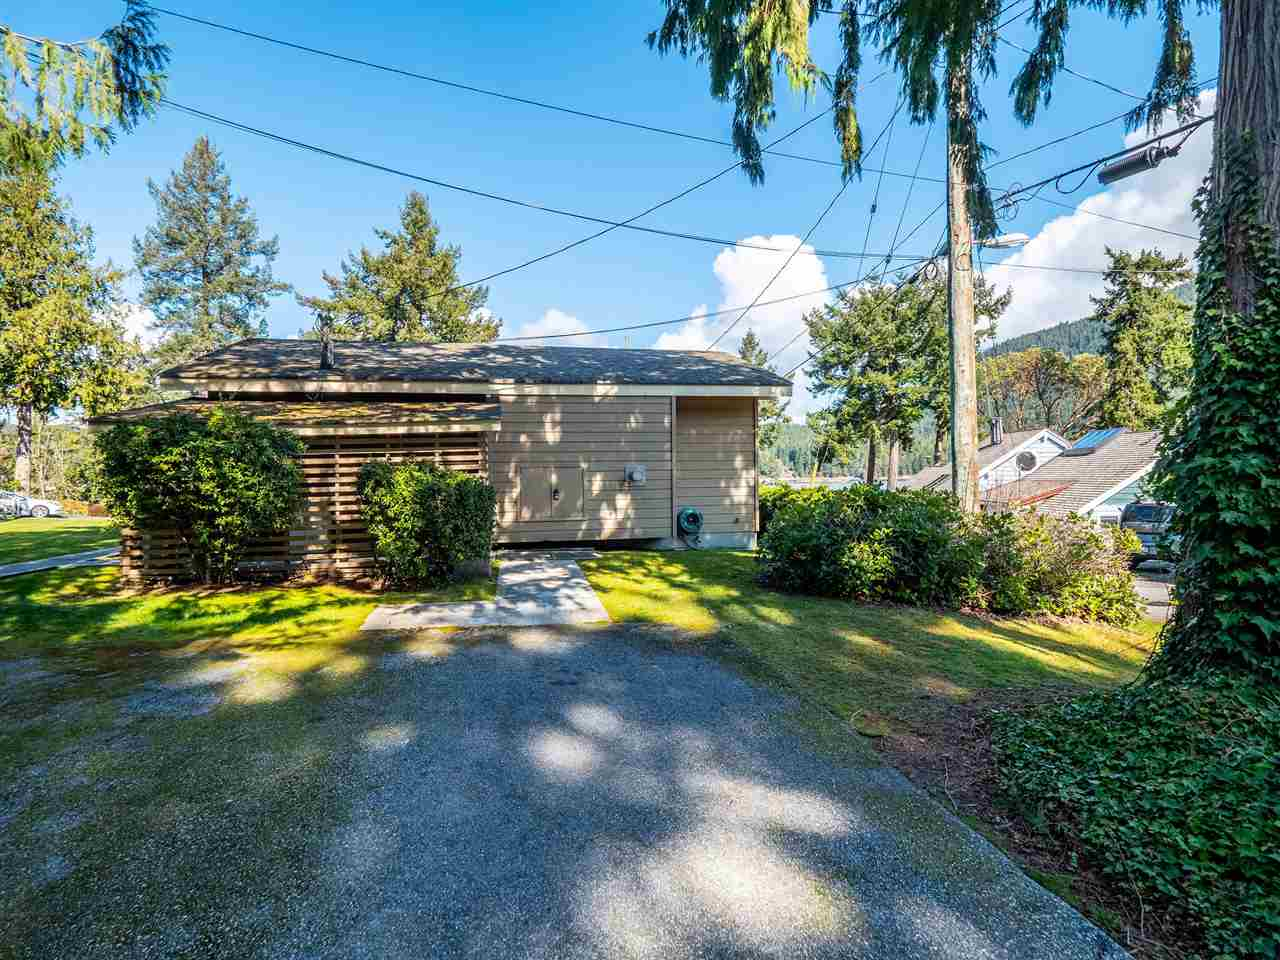 11 4995 GONZALES ROAD - Pender Harbour Egmont House/Single Family for sale, 2 Bedrooms (R2447947) - #19